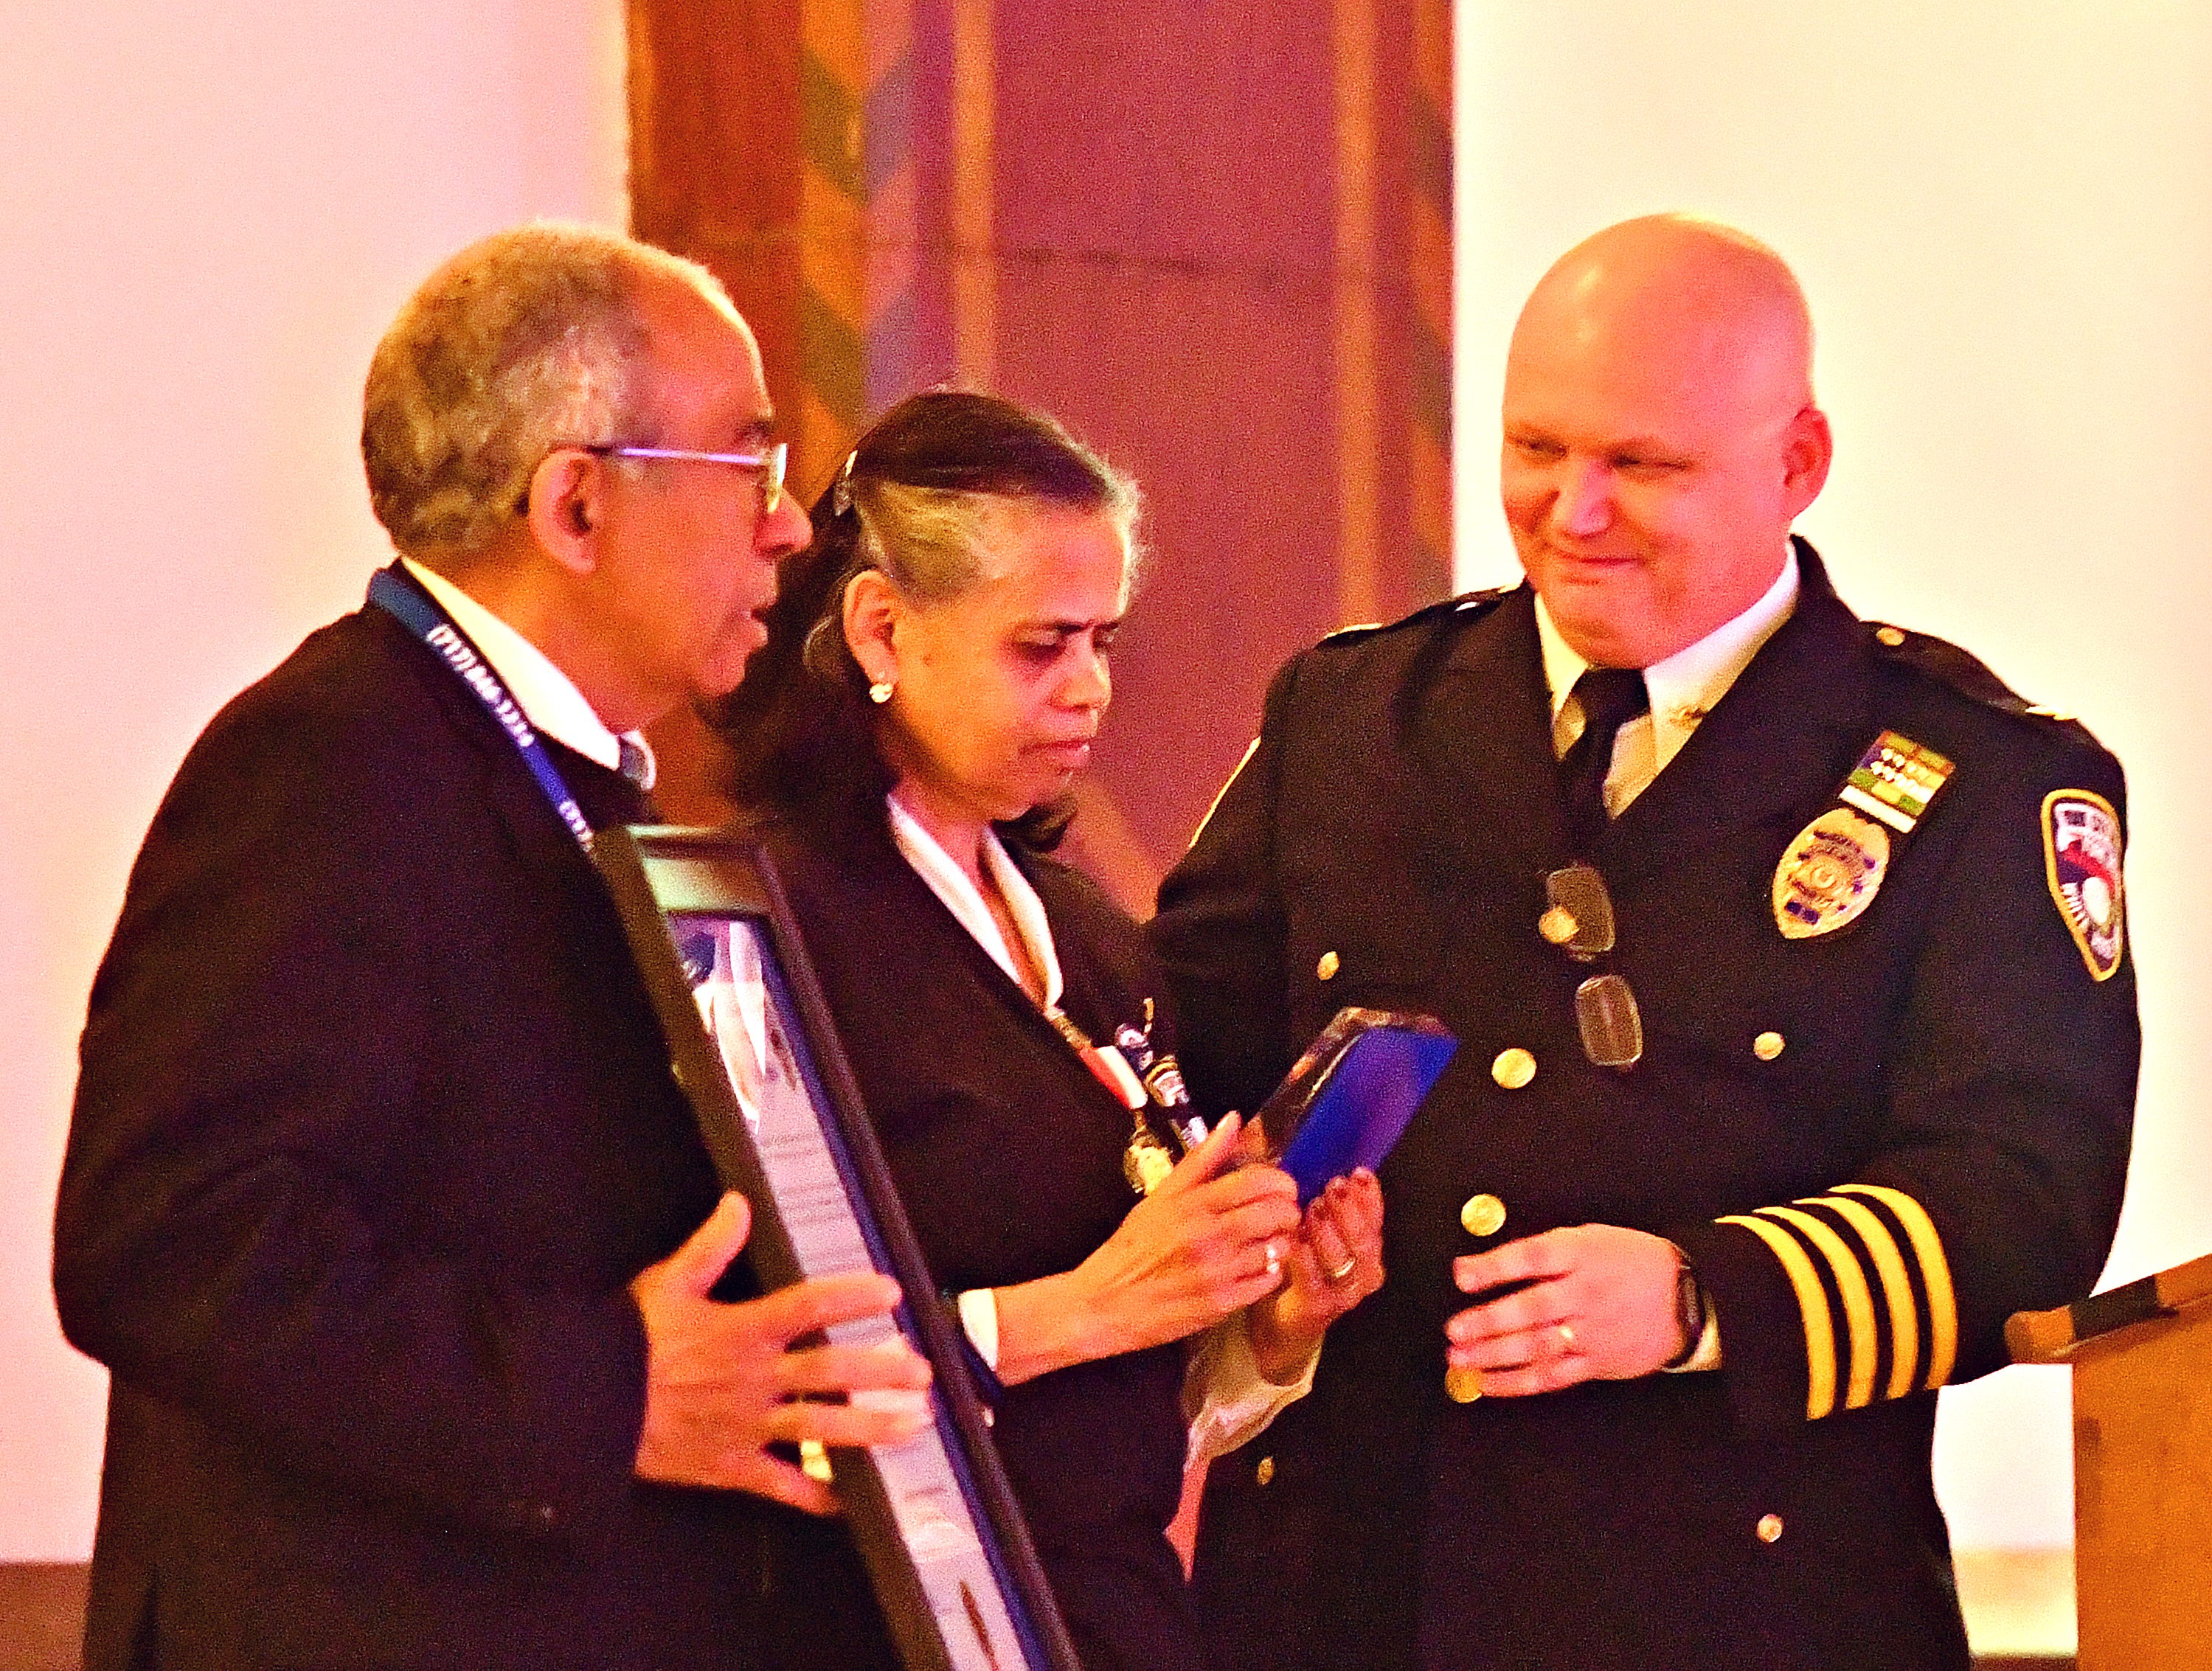 From left, York City Police Chaplains Alix and Arelis Sable are presented with badge number 187 by York City Police Chief Troy Bankert during the York City Police Departmental Awards Ceremony at Valencia Ballroom in York City, Thursday, May 9, 2019. The badge belonged to the Sables' son, Officer Alex Sable, 37, who died in the line of duty last May. Dawn J. Sagert photo